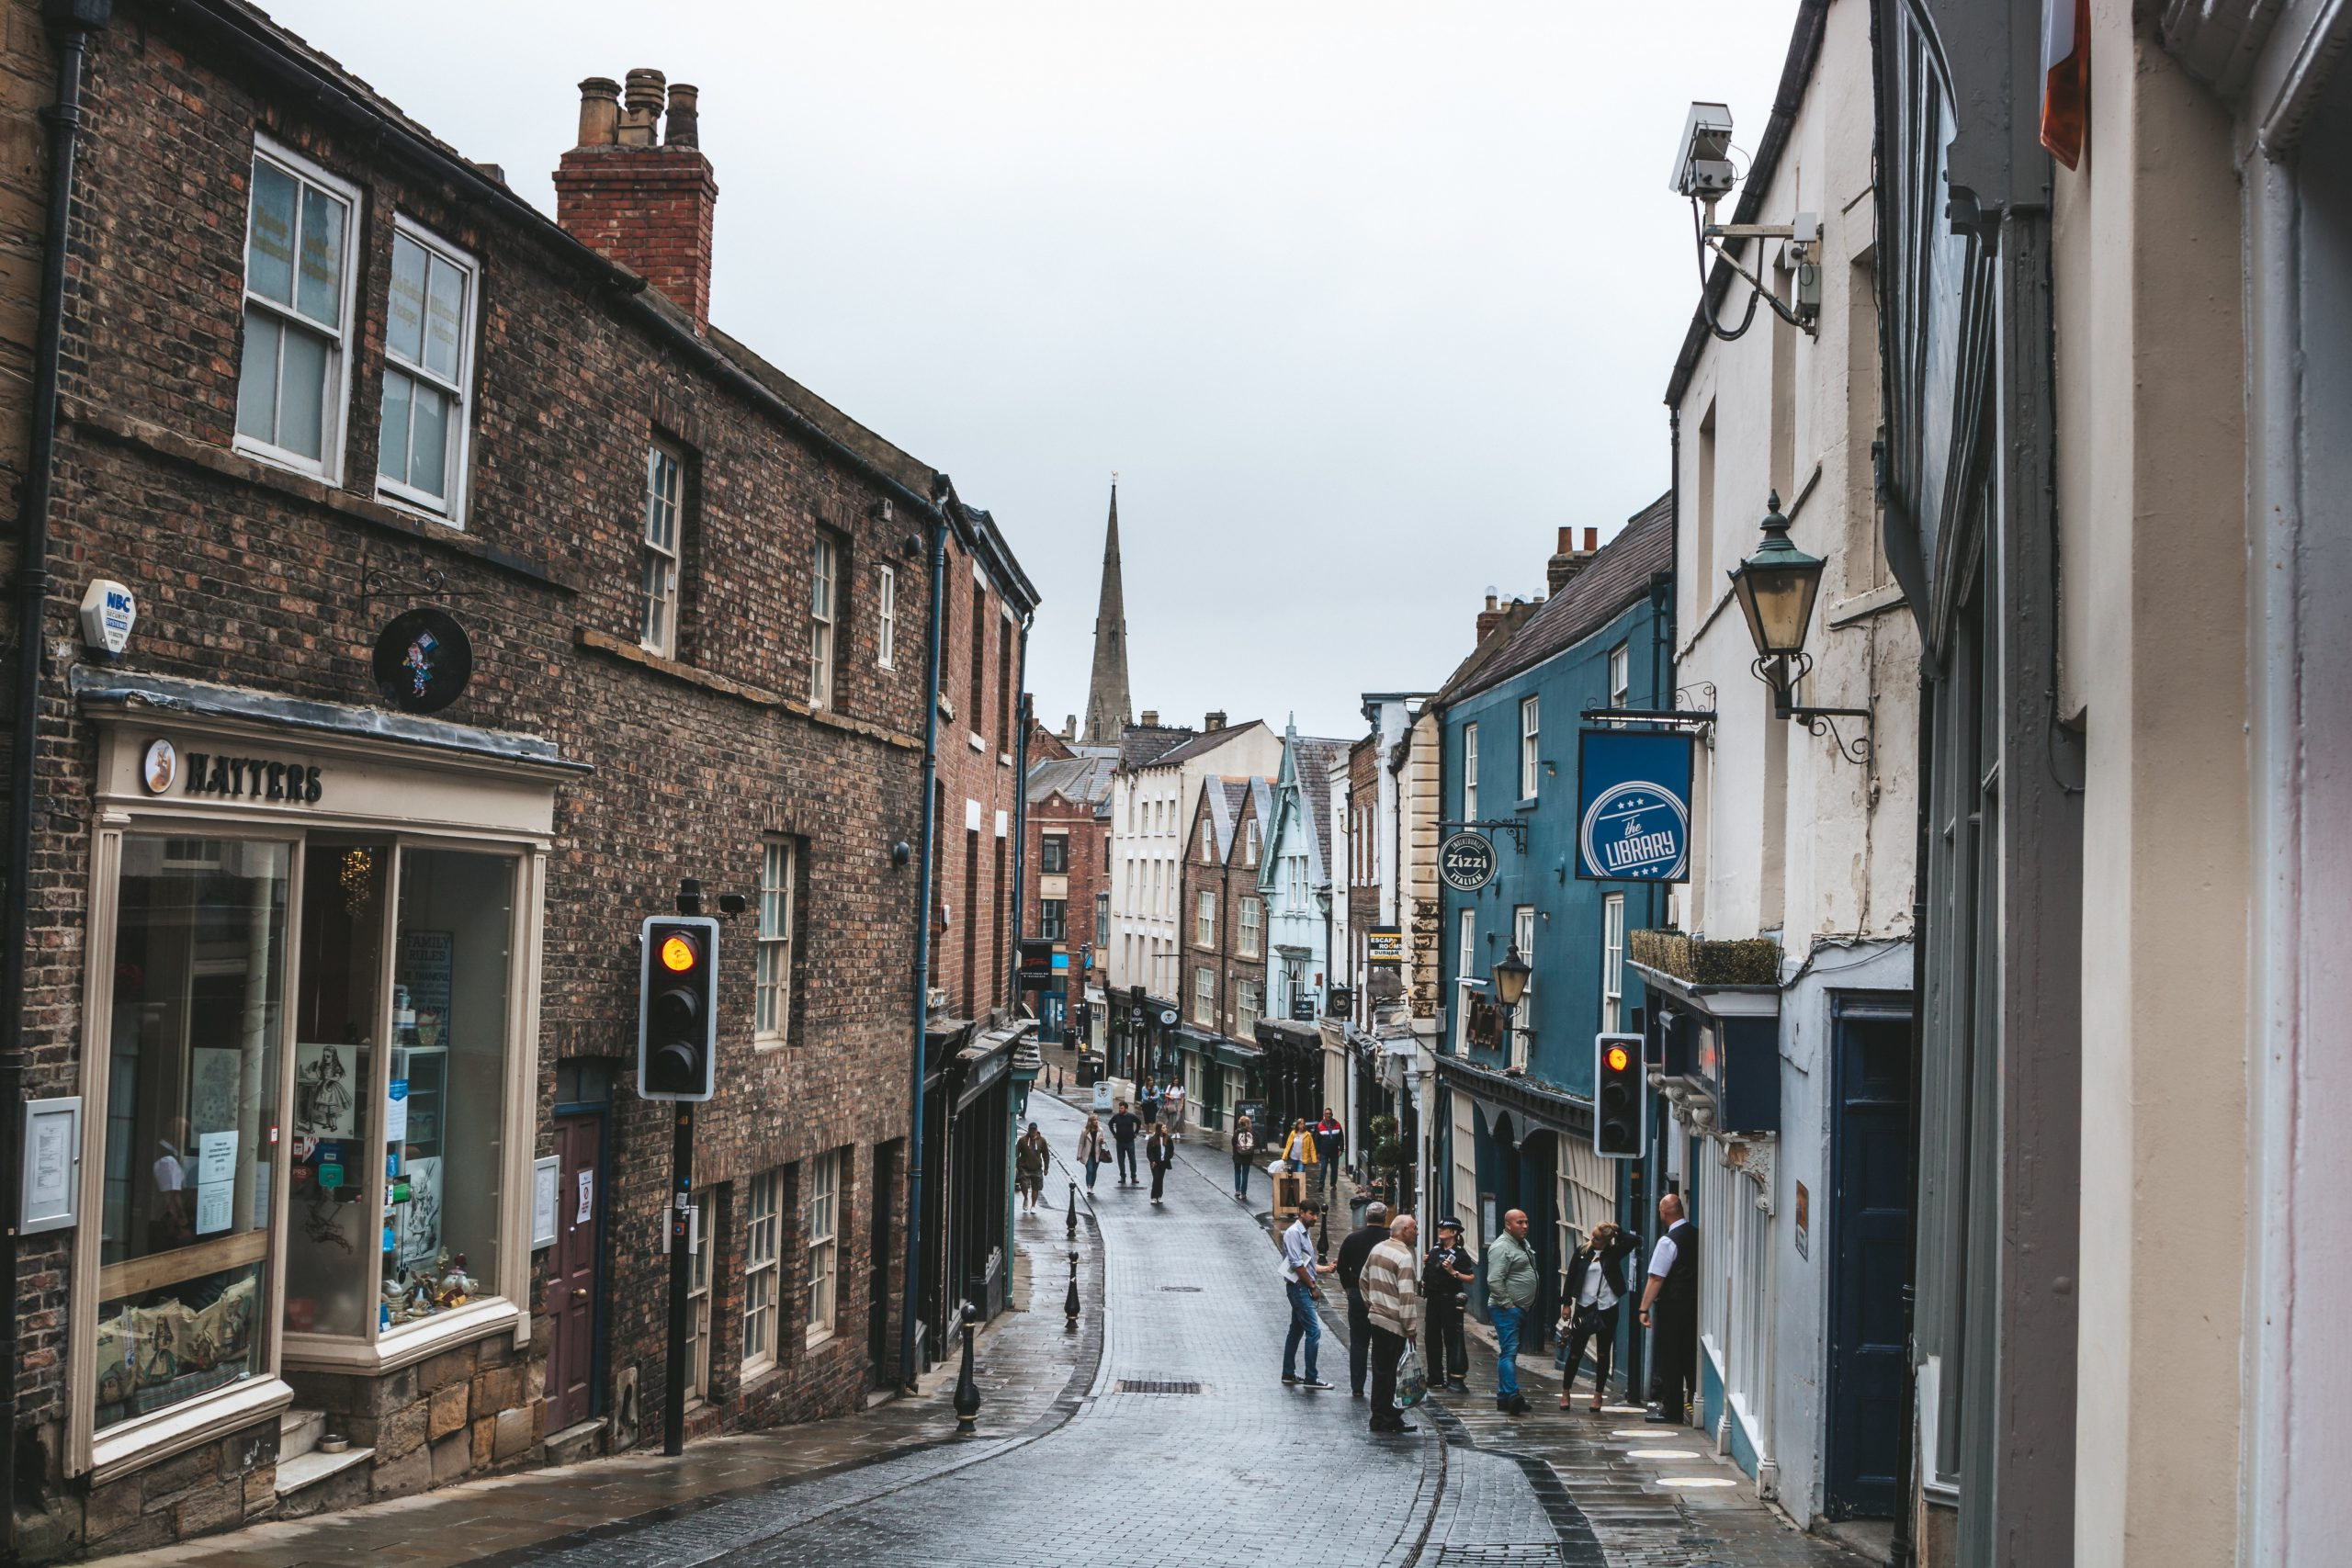 Durham high street - people walk on the street between buildings during the daytime in the rain